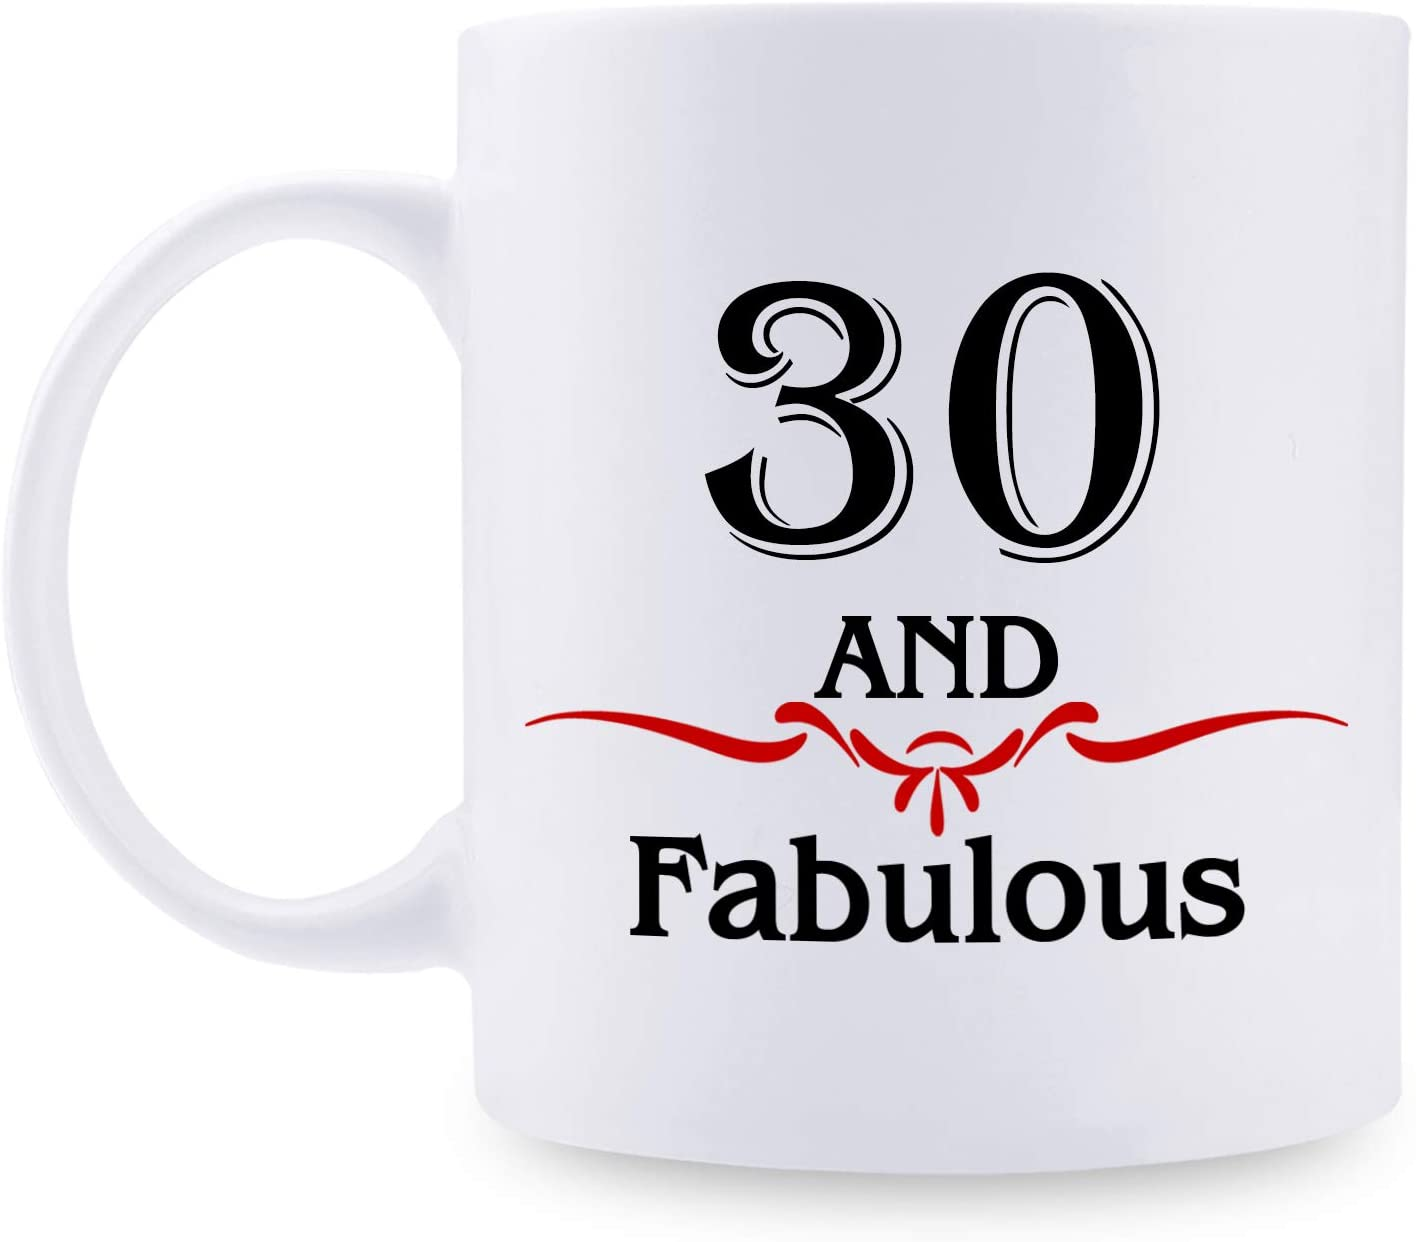 30th Birthday Gifts for Women - 1990 Birthday Gifts for Women, 30 Years Old Birthday Gifts Coffee Mug for Mom, Wife, Friend, Sister, Her, Colleague, Coworker - 11oz Mug, 30 and Fabulous